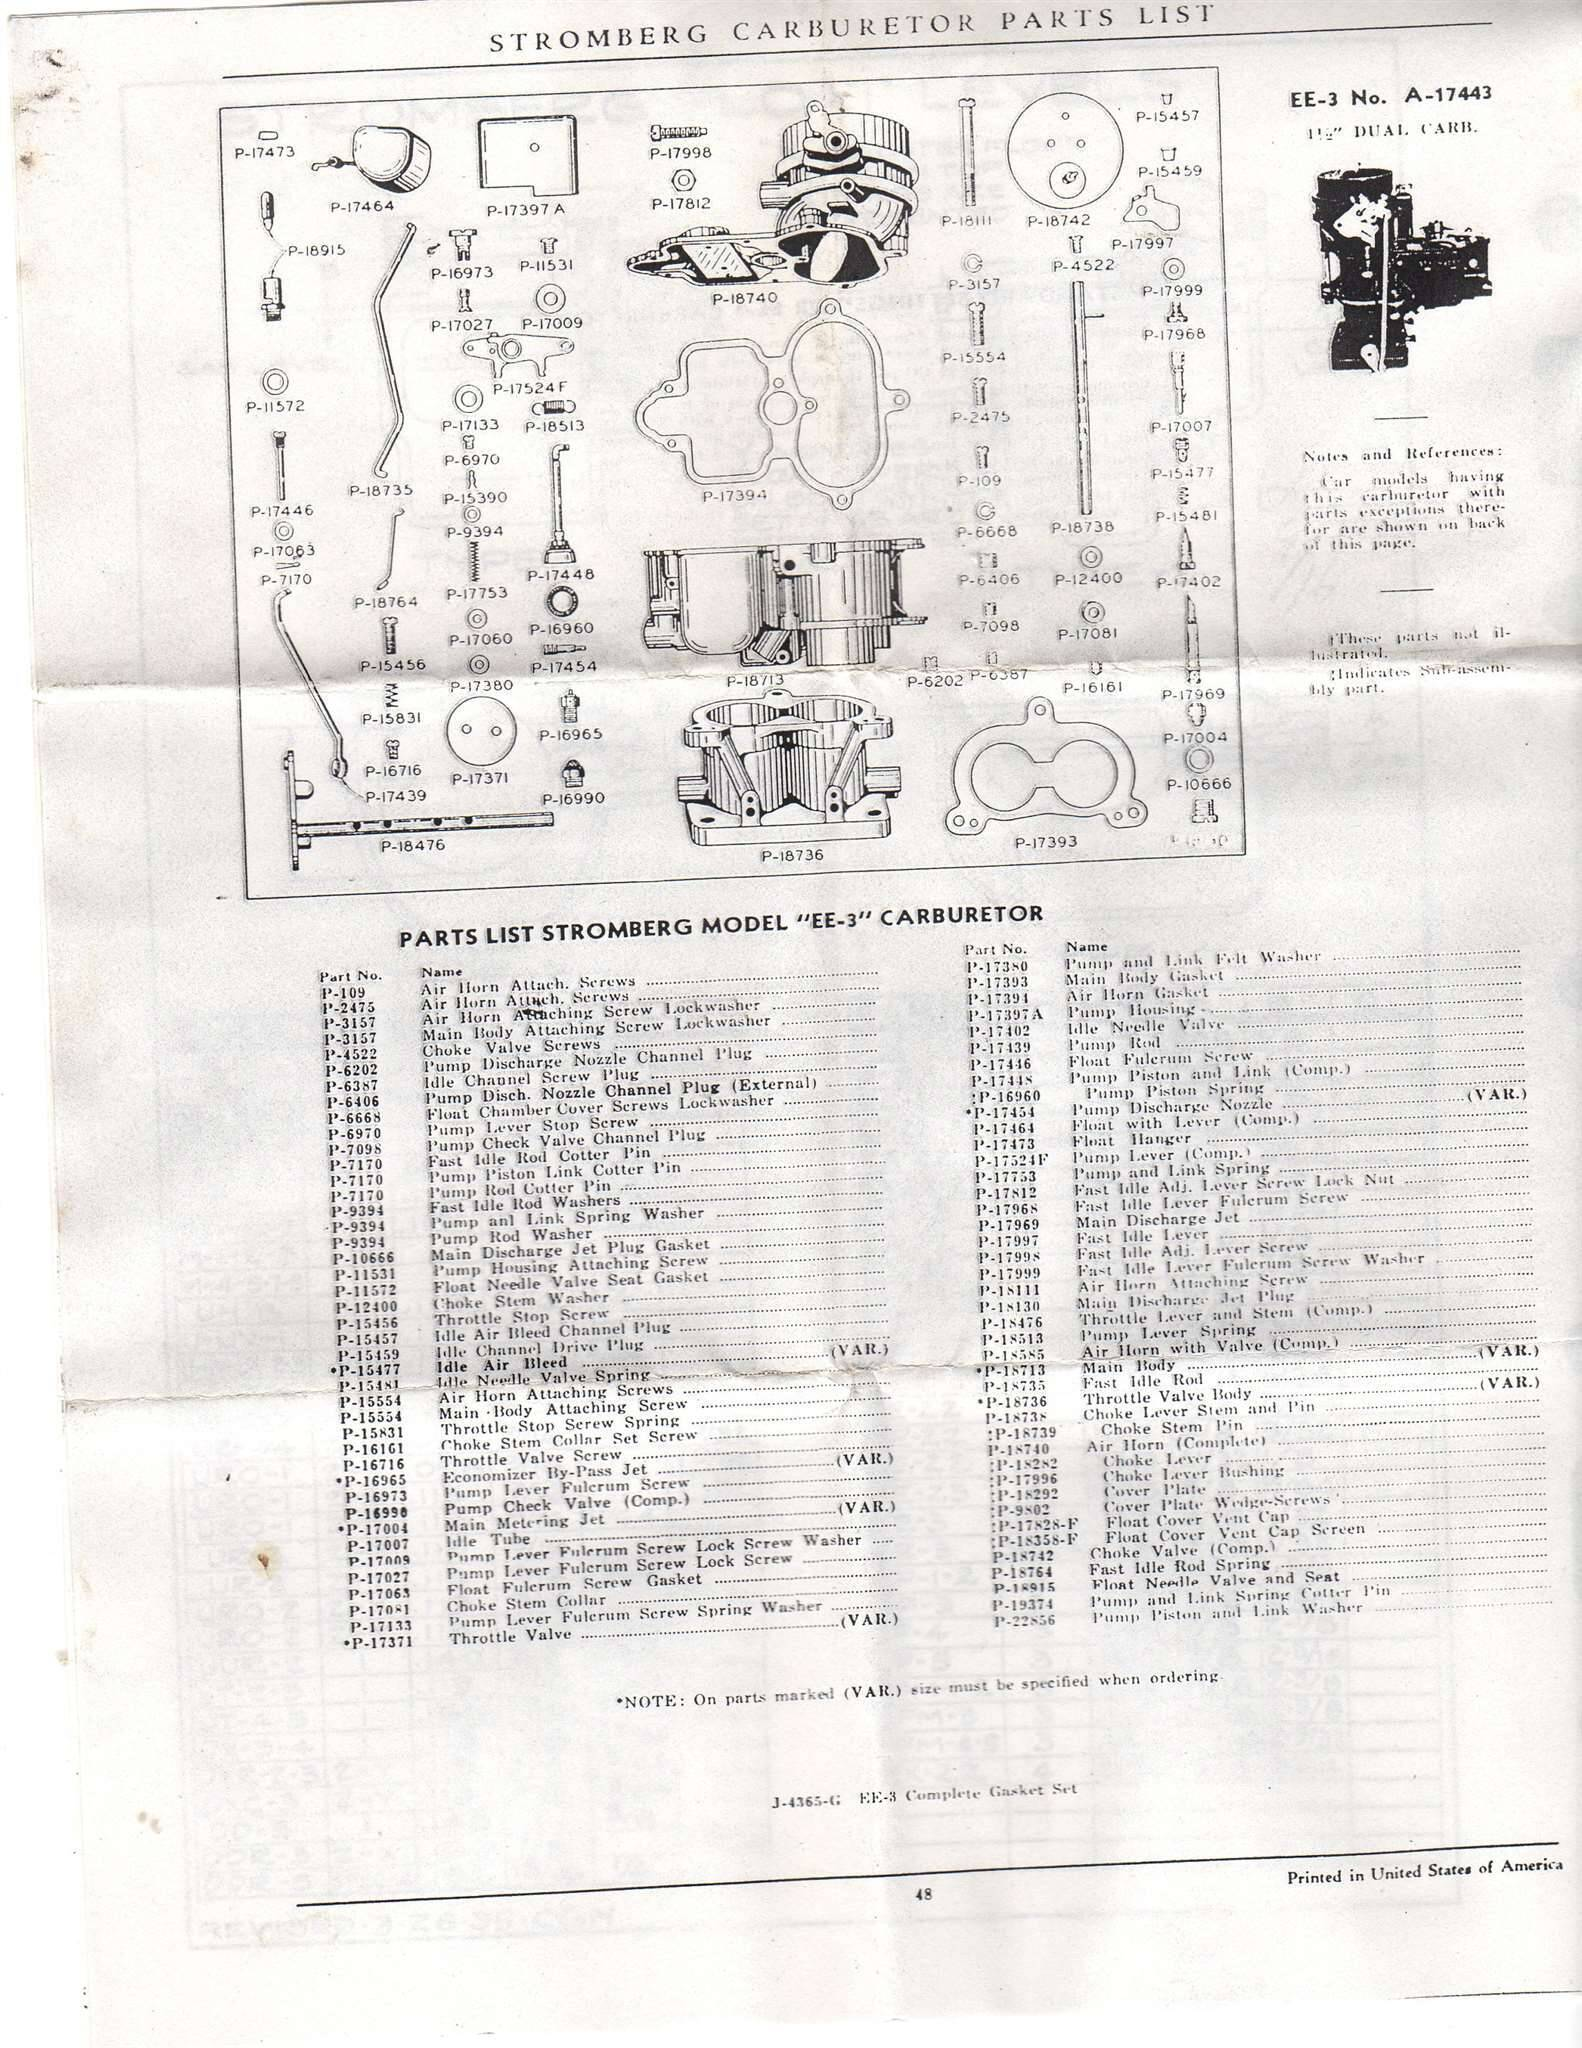 stromberg carburetor diagram holden colorado stereo wiring packard motor car information ee 3